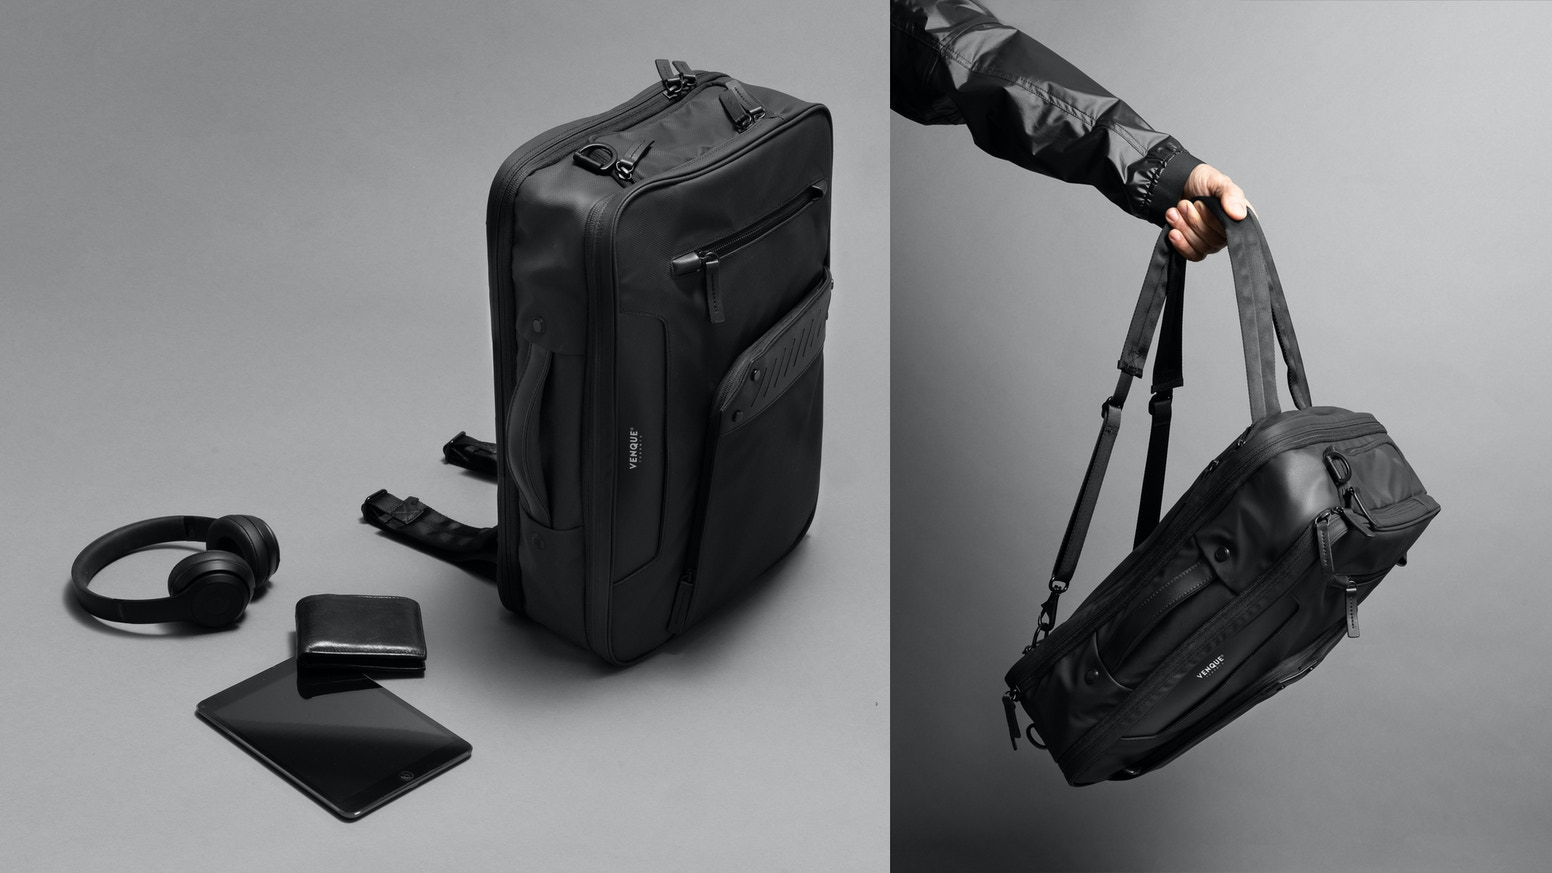 Modern Advanced Design+ 15 Features, Transformable, Convertible, 3 Ways of Carrying, All in One, The most versatile bag for your travel